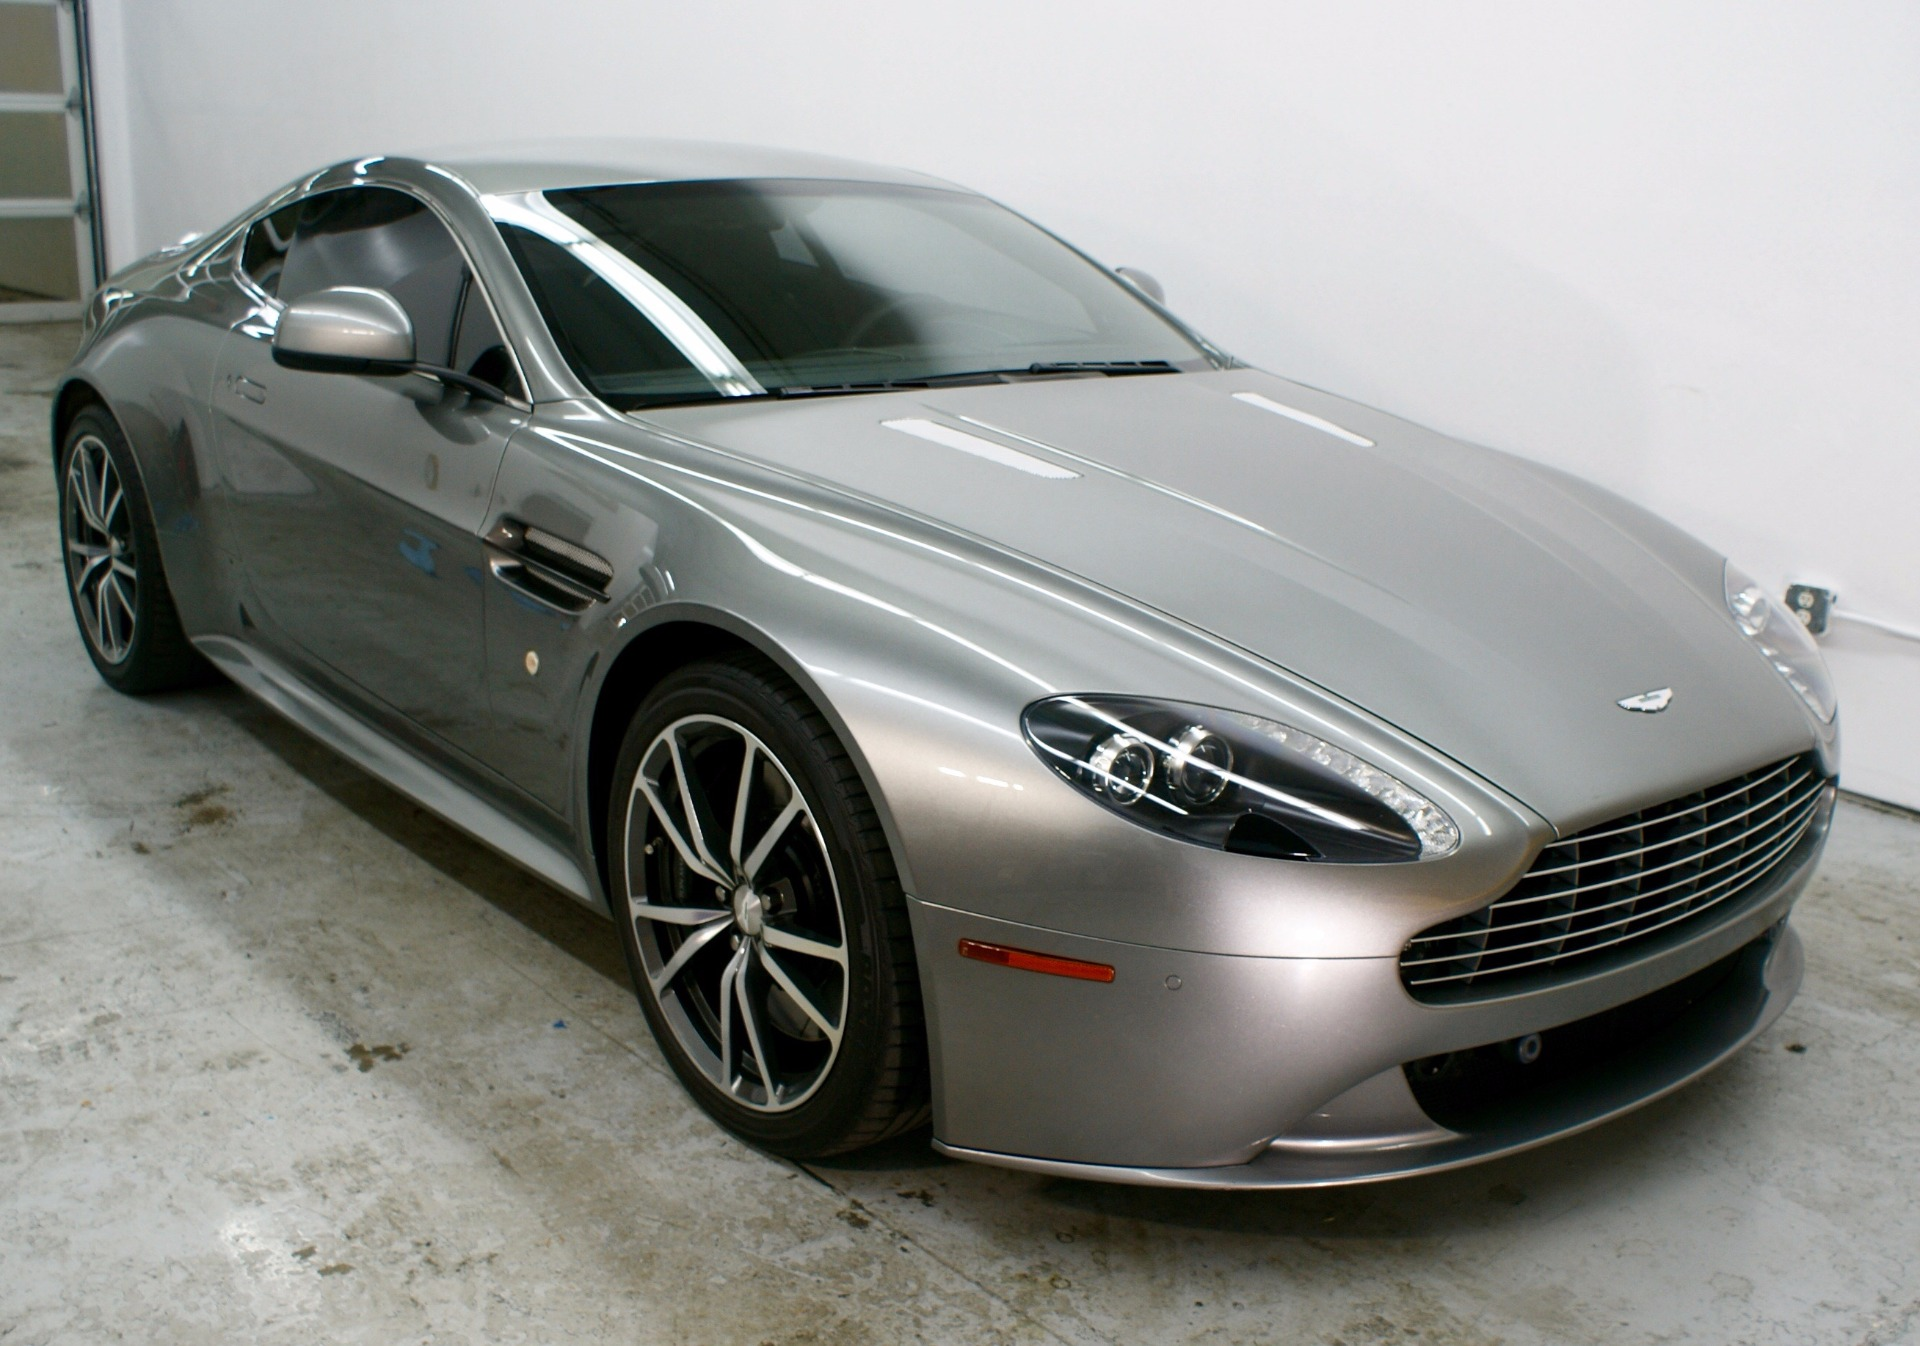 2012 aston martin v8 vantage s stock 0030 for sale near mountain view ca ca aston martin dealer. Black Bedroom Furniture Sets. Home Design Ideas